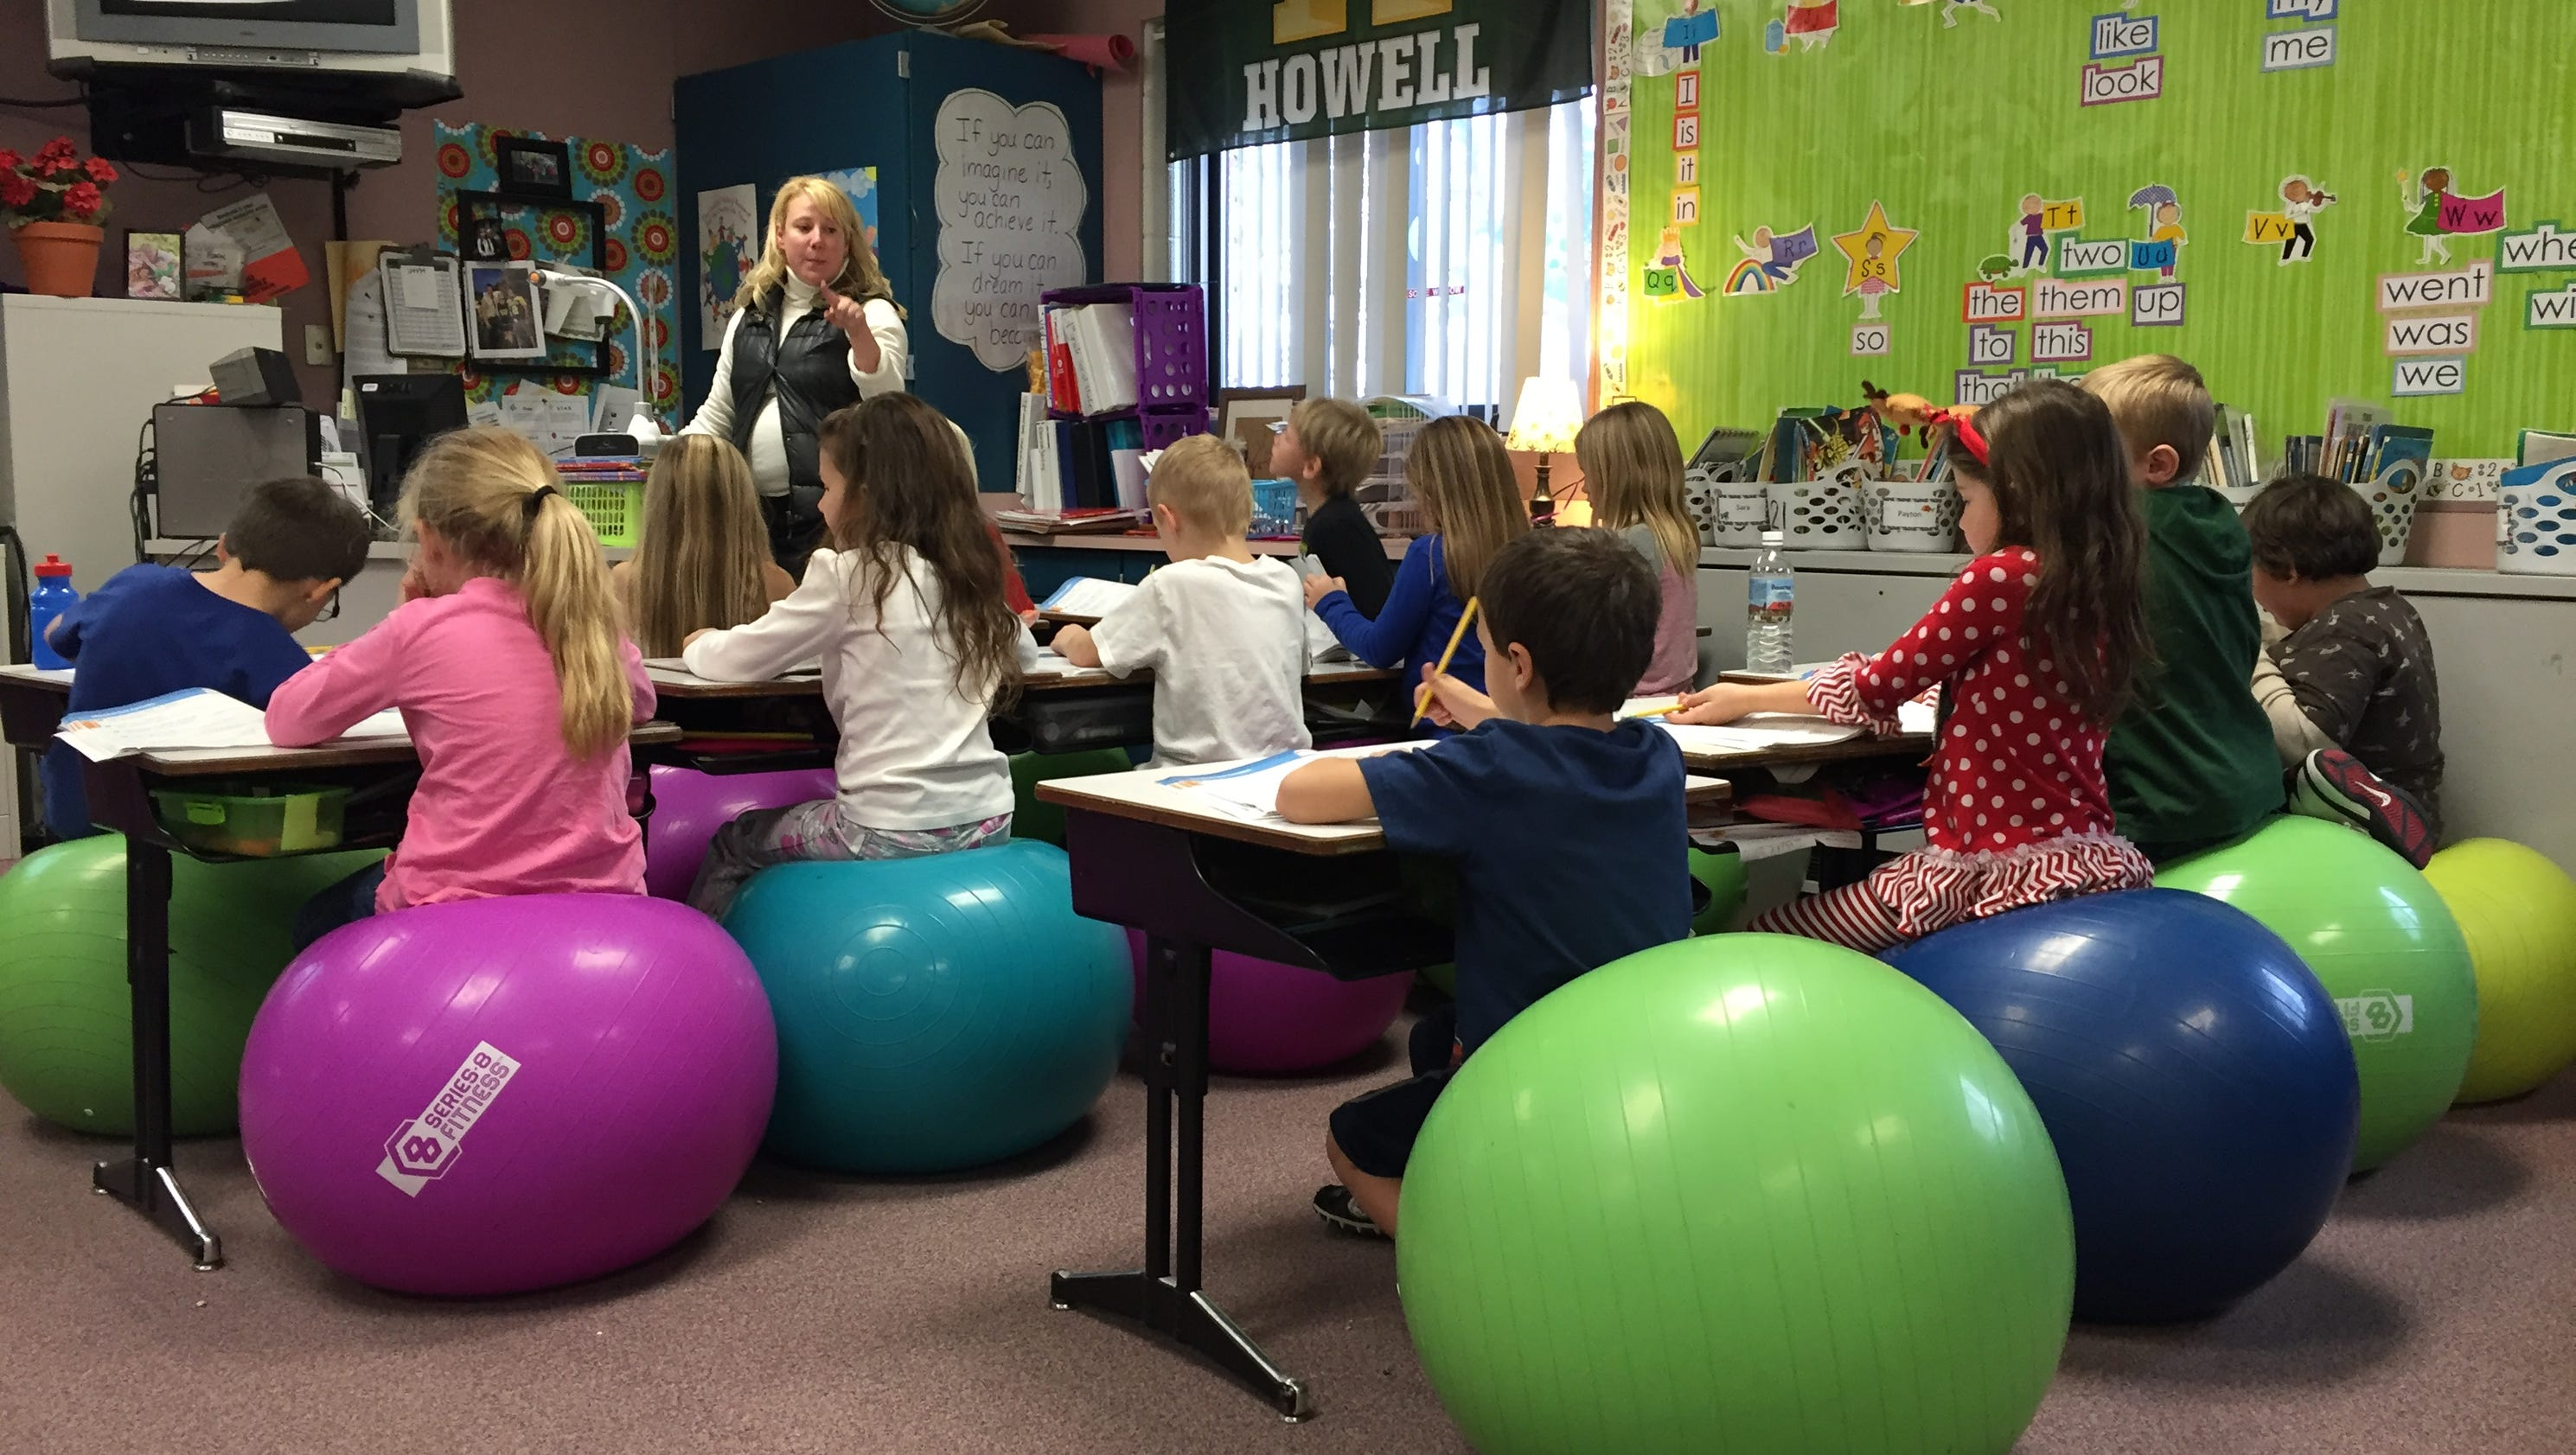 Exercise balls give students a bounce